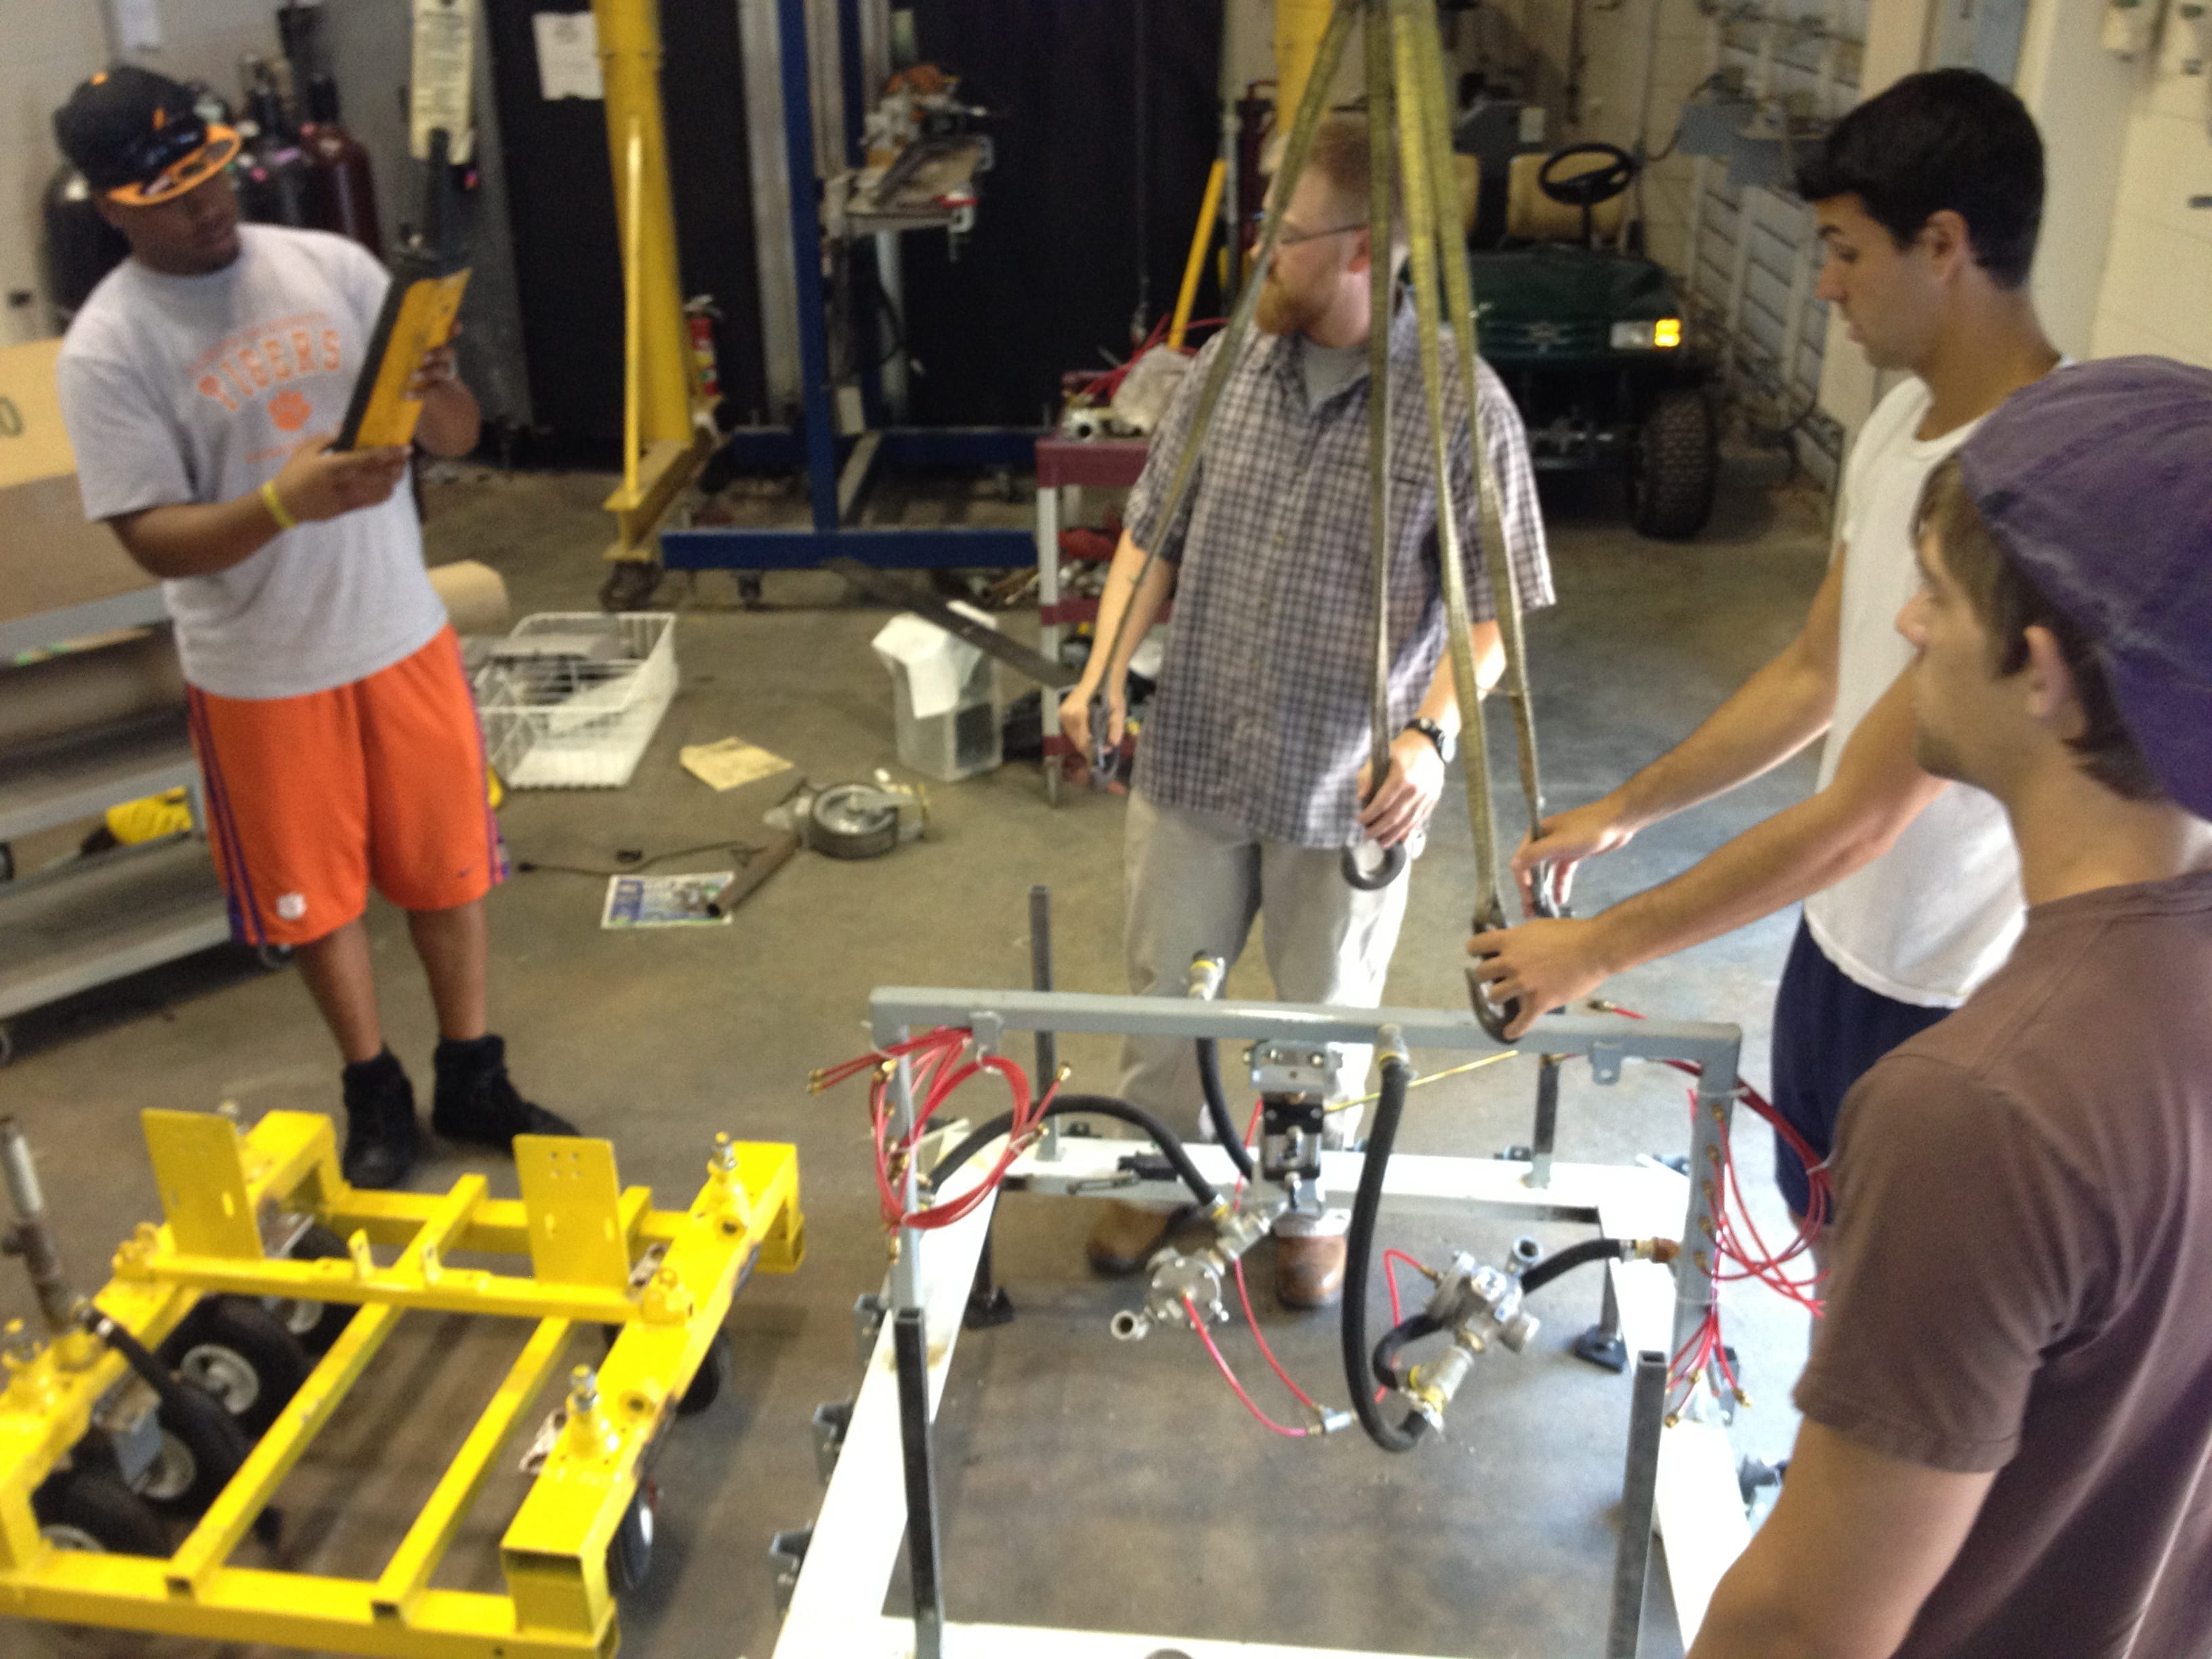 Clemson student researchers reassemble the mobile drill press. Photo by Gregory Mocko